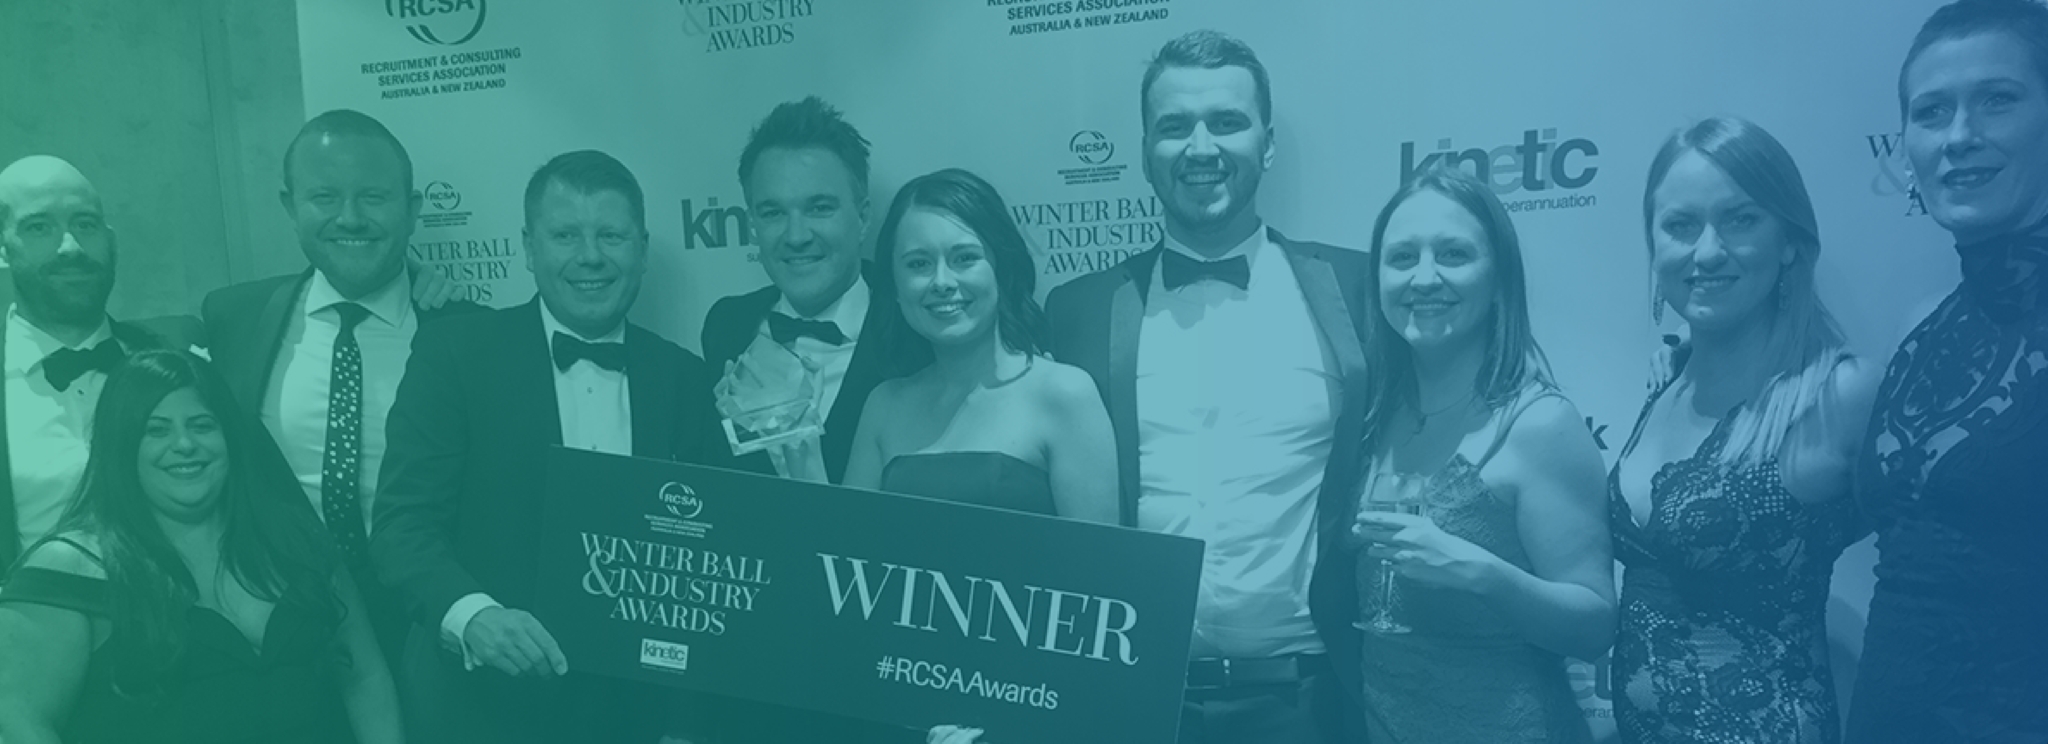 RCSA Awards Win for M&T Resources